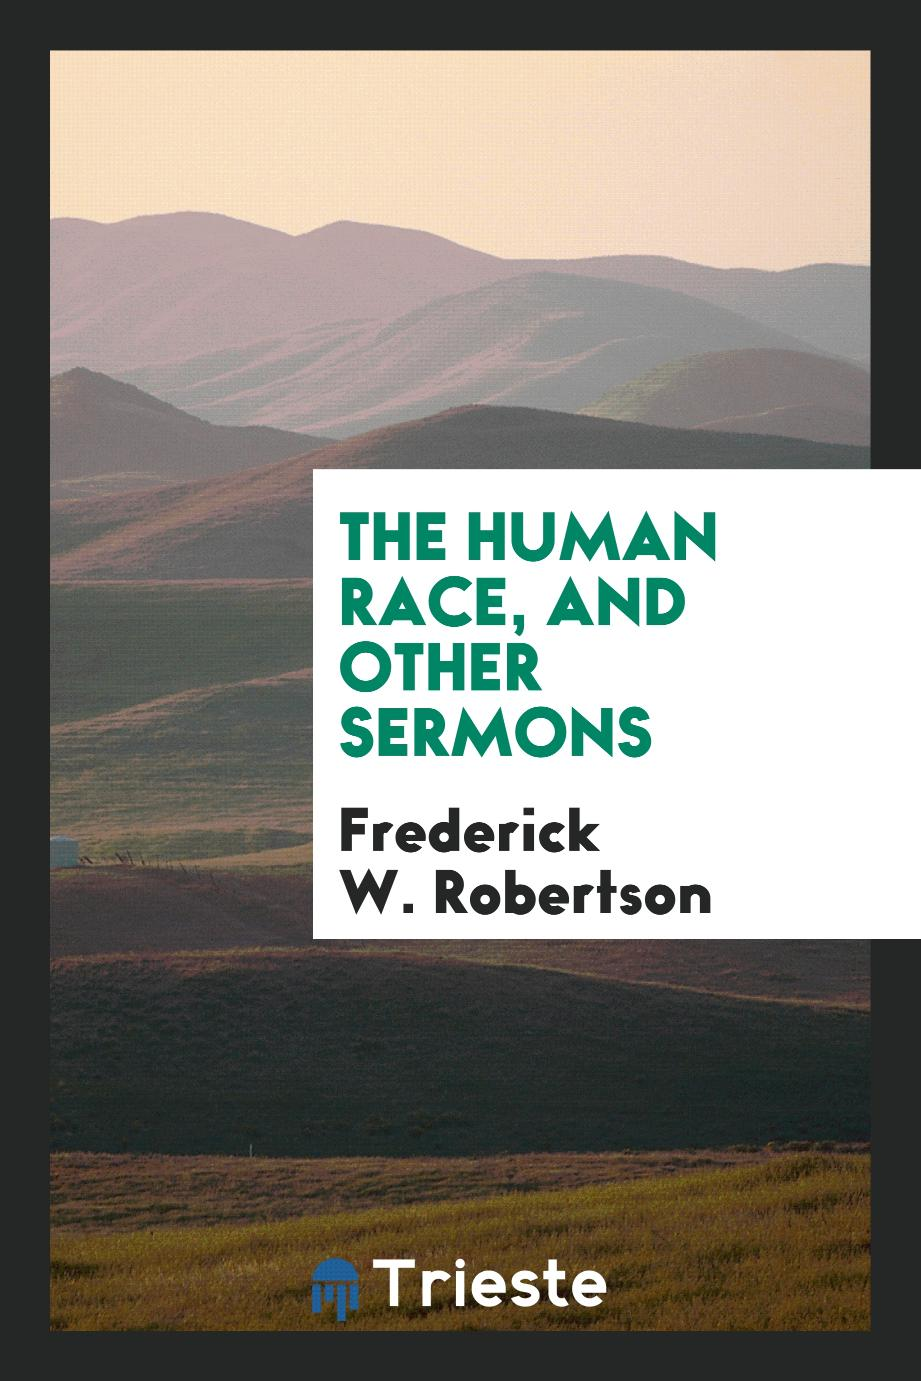 The human race, and other sermons